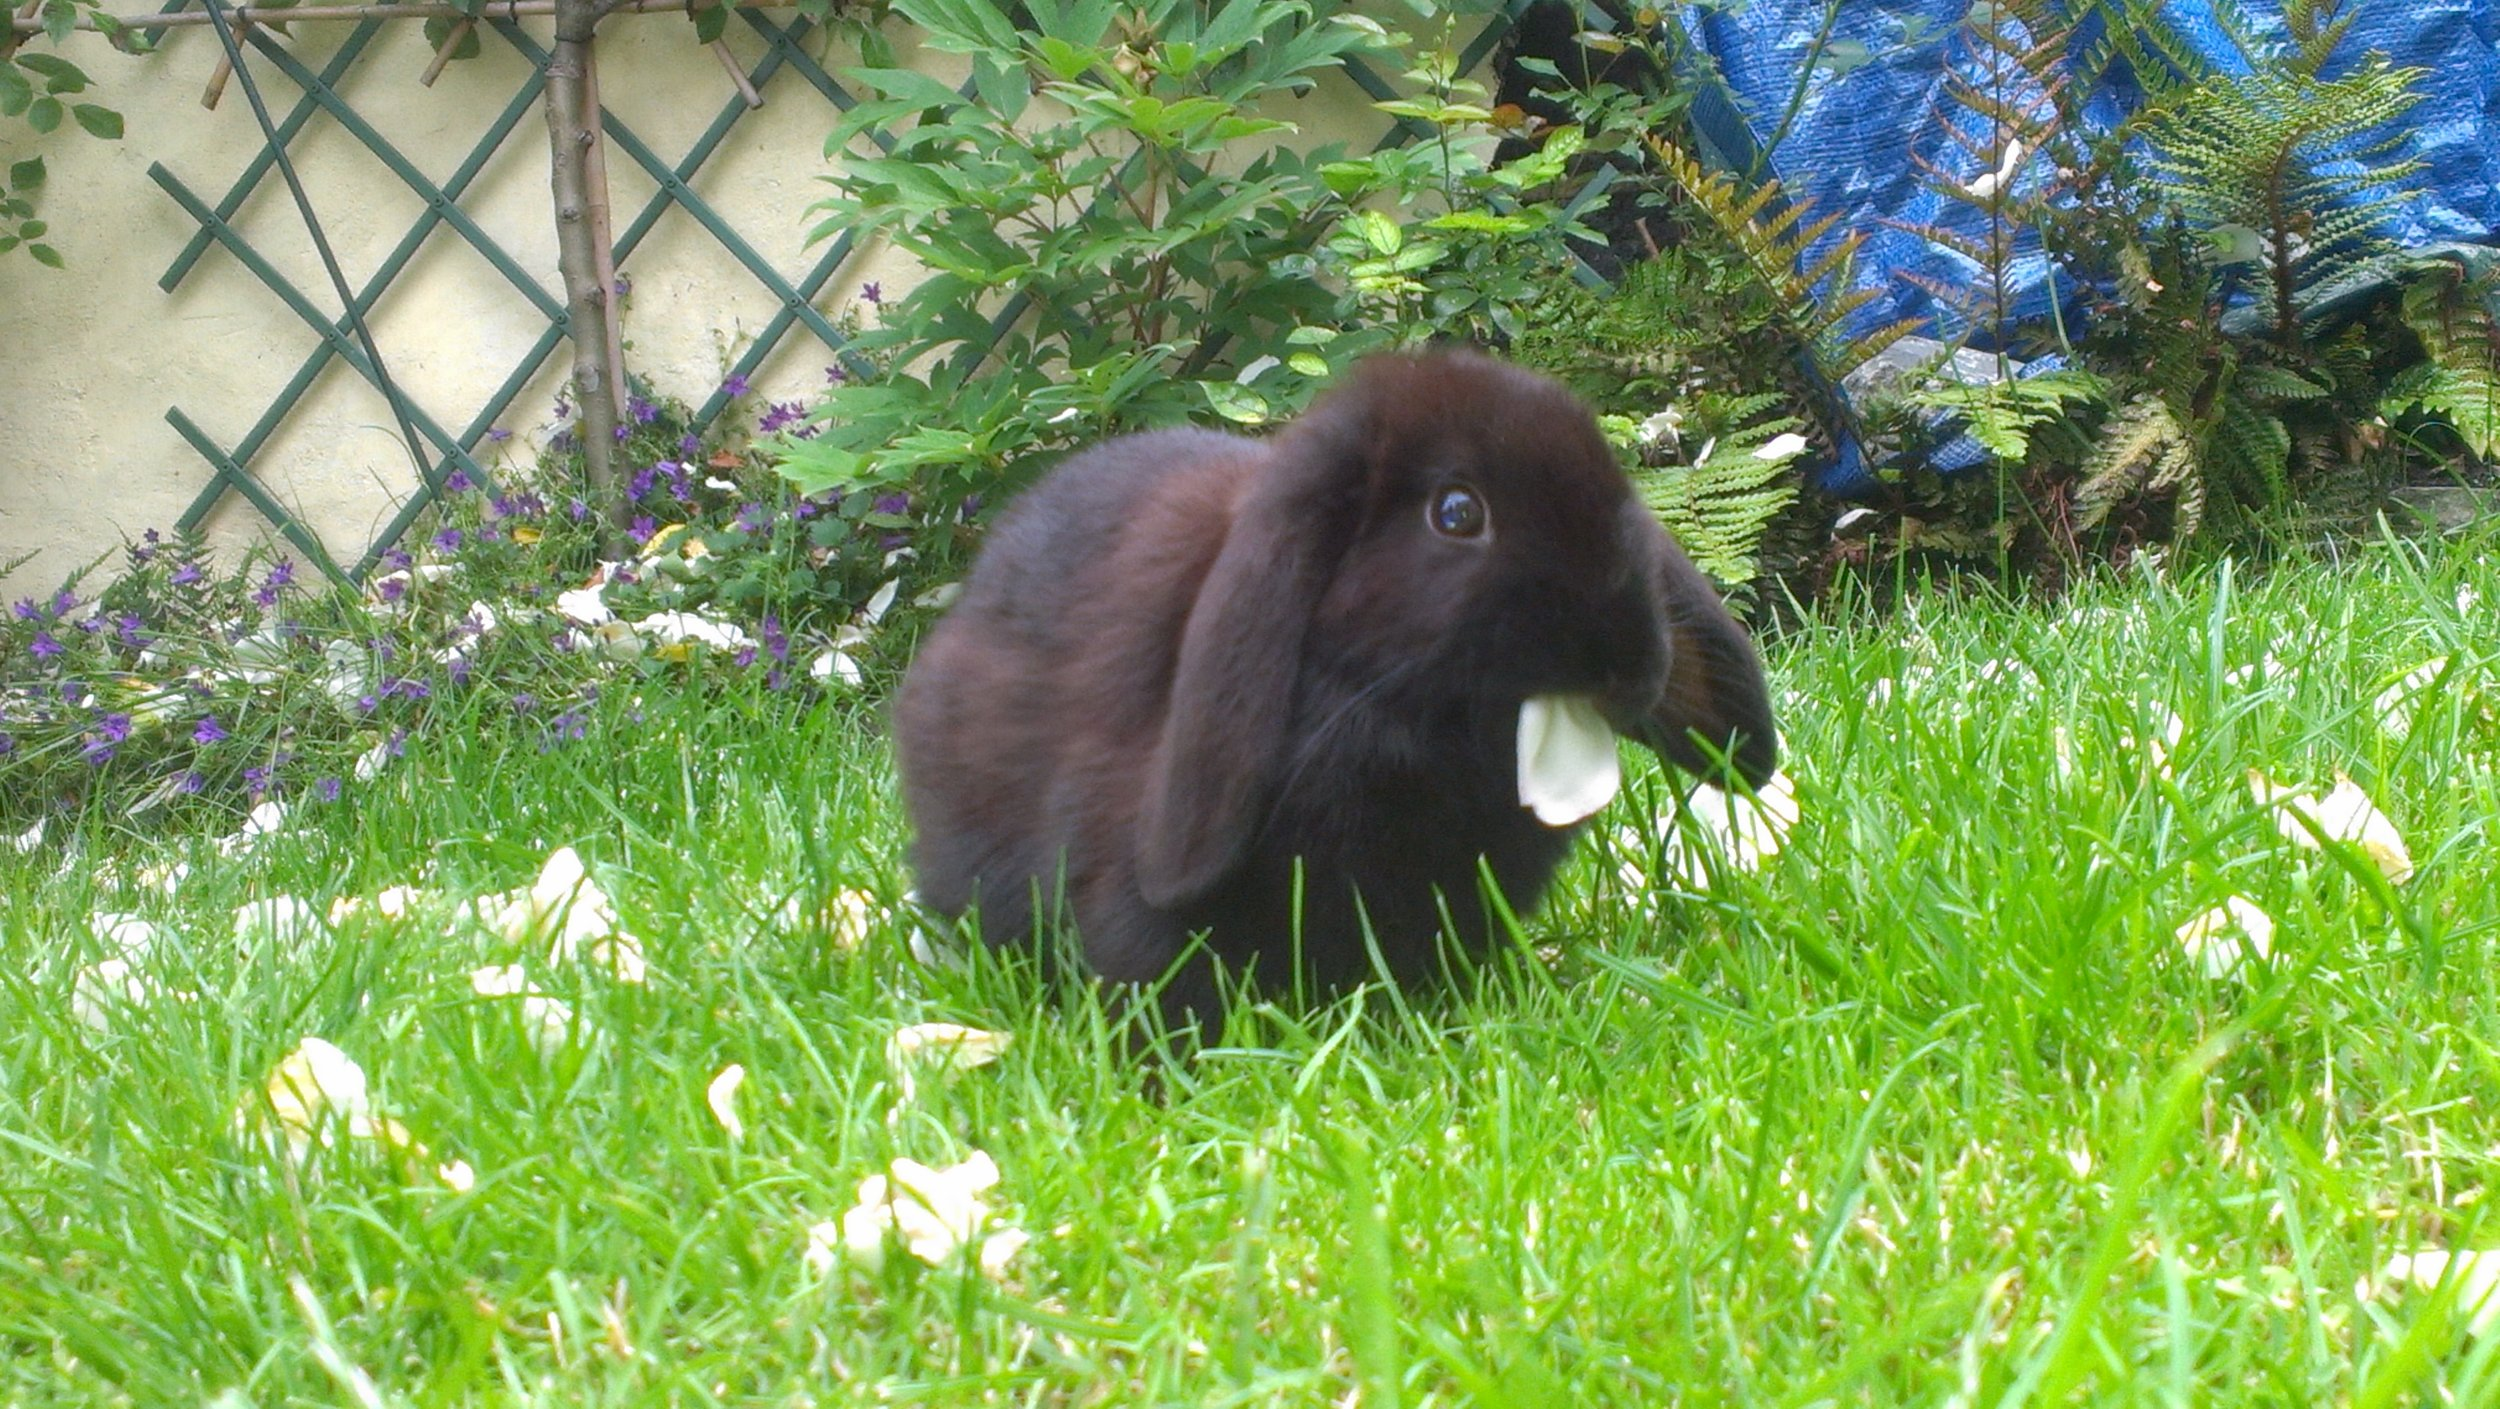 Bunny's Been Caught Eating a Flower Petal!